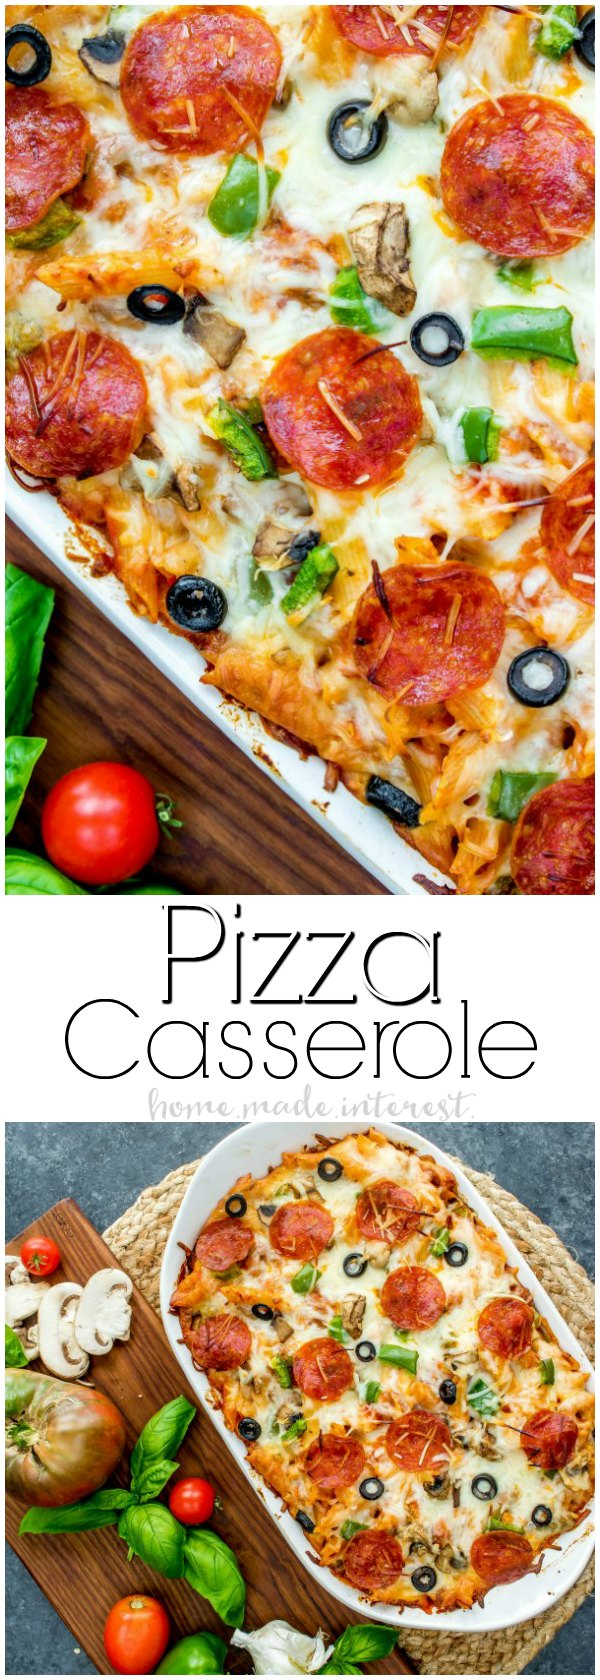 Pizza Casserole | This pizza bake recipe is going to make your next pizza night extra fun. Forget ordering pizza instead make this easy pizza casserole filled with ooey gooey mozzarella cheese and all of your favorite pizza toppings. If you are looking for a casserole recipe for dinner this Pizza casserole recipe is going to be a huge hit!